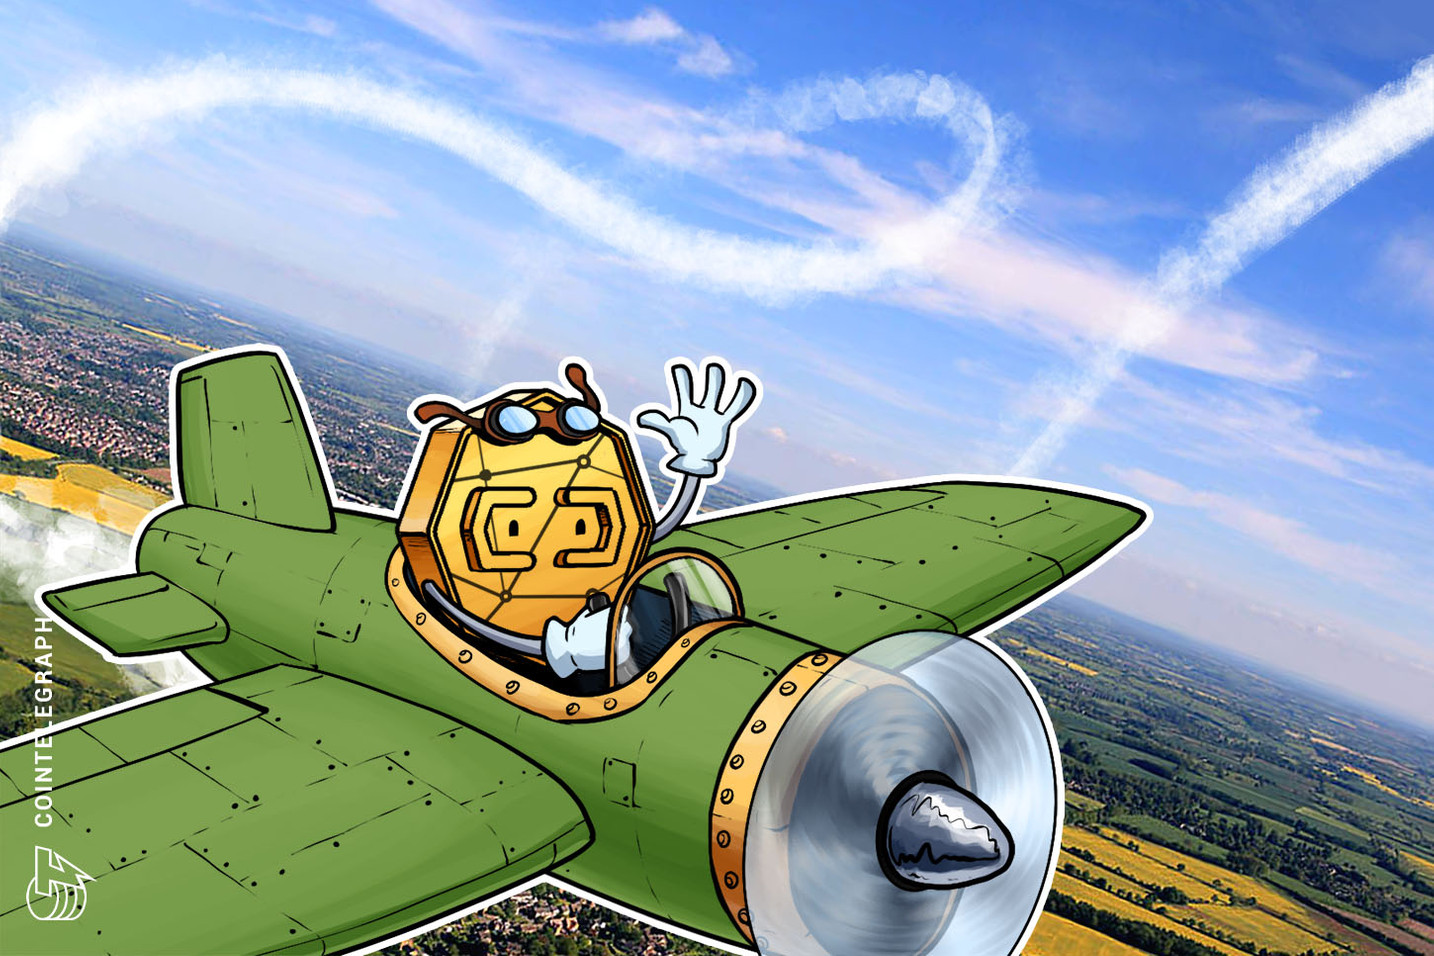 Bitcoin Extends Price Anniversary Rally to Hit $3,800 as Altcoins Surge Higher